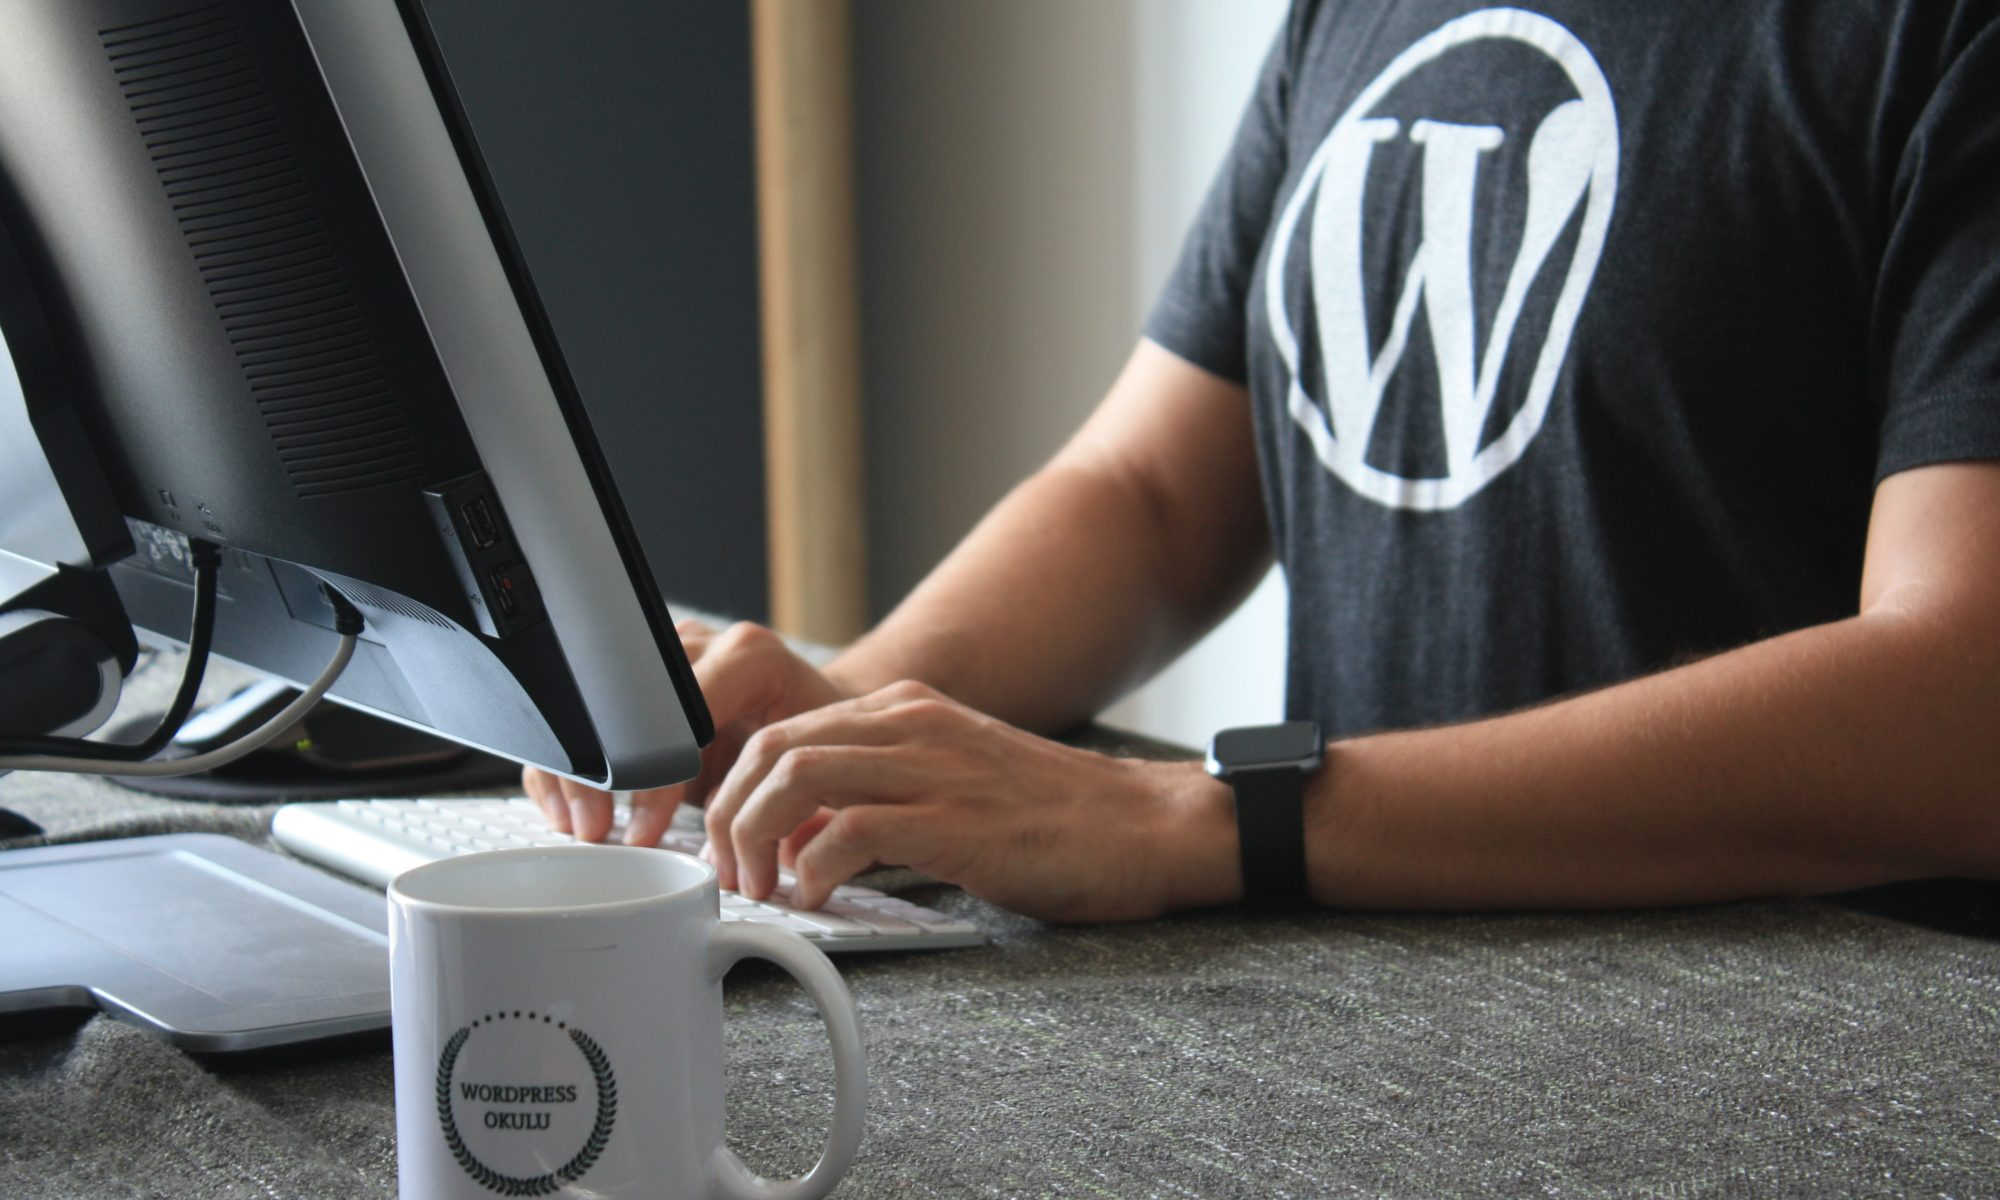 WordPress is hands down the most popular CMS out there. Since it started in 2003, it's accumulated a market share of 39% of websites.